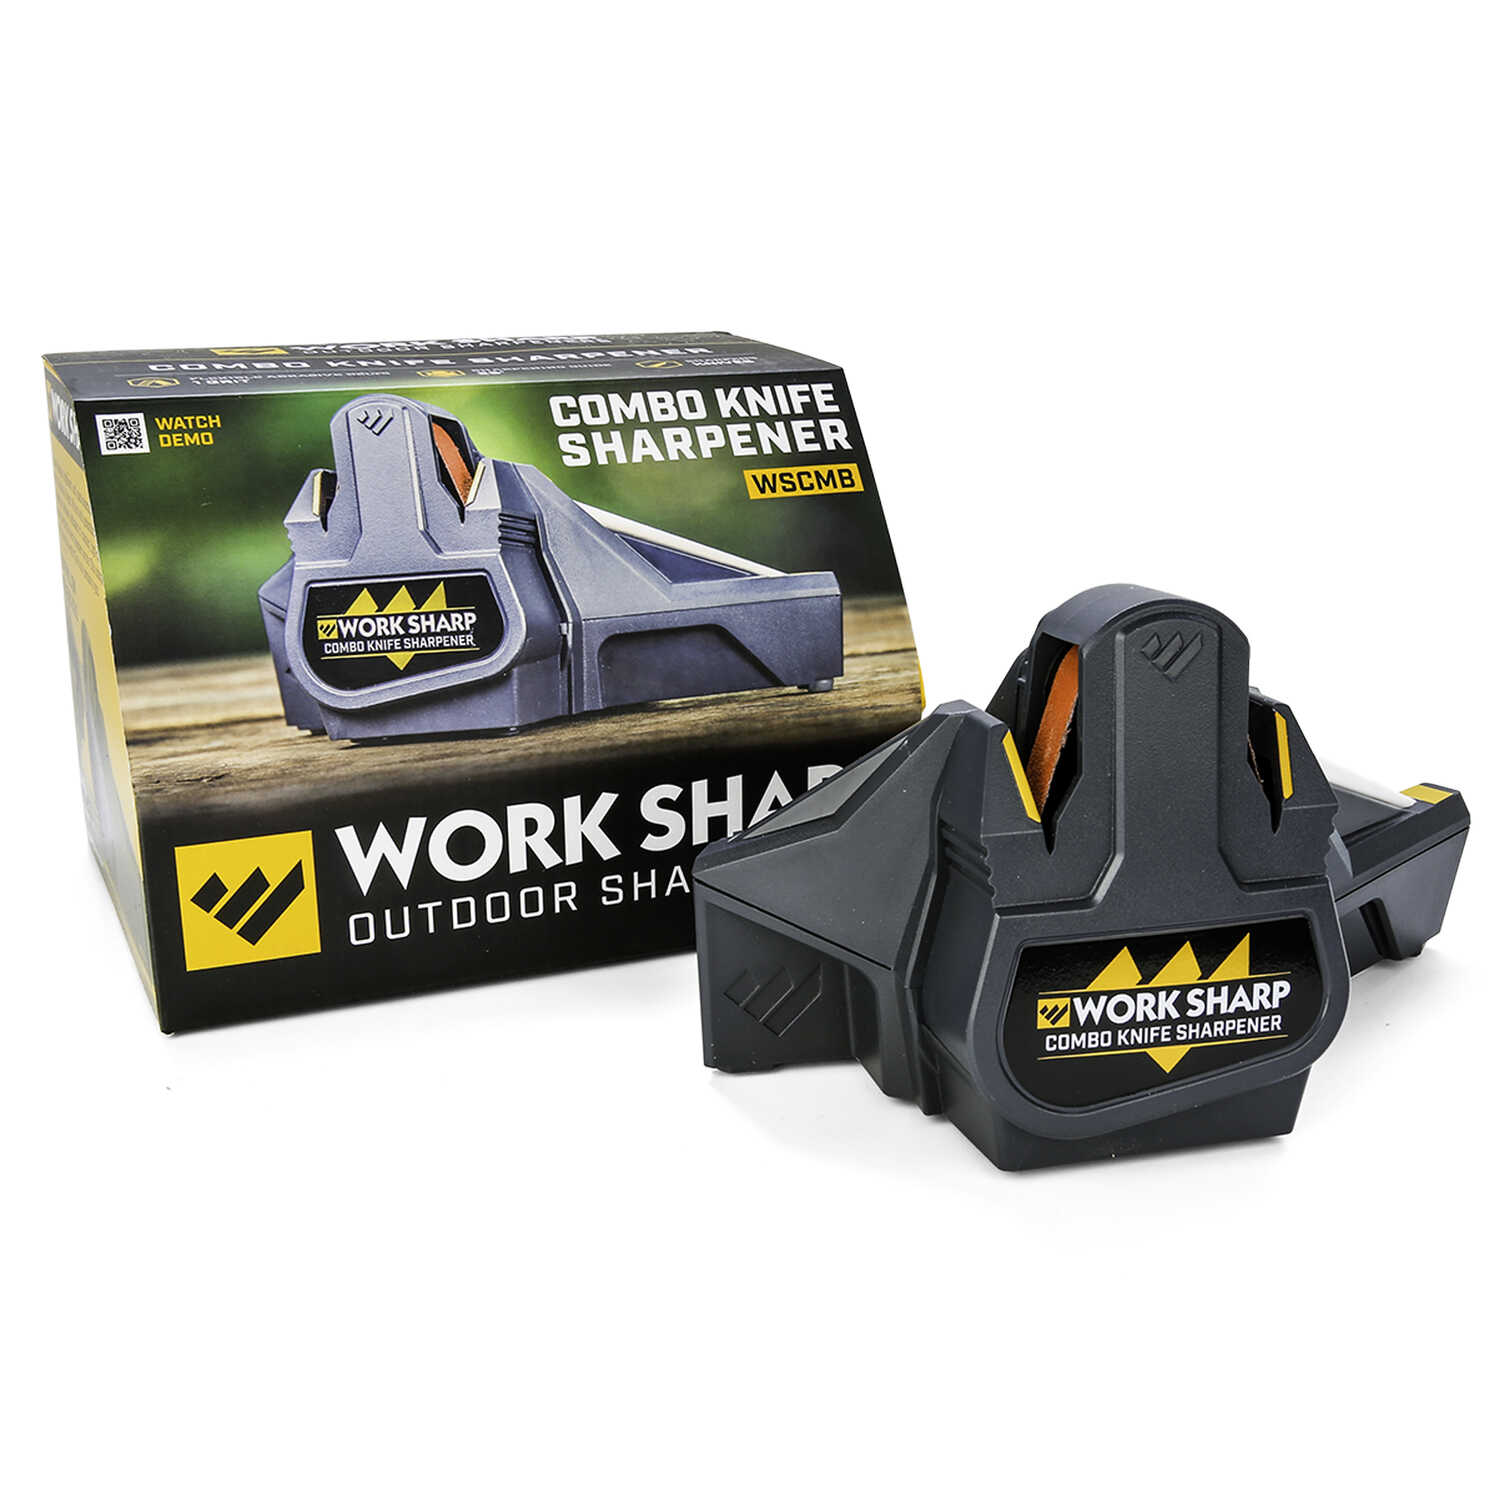 Work Sharp Outdoor  115 volt Knife Sharpener  1 pc.